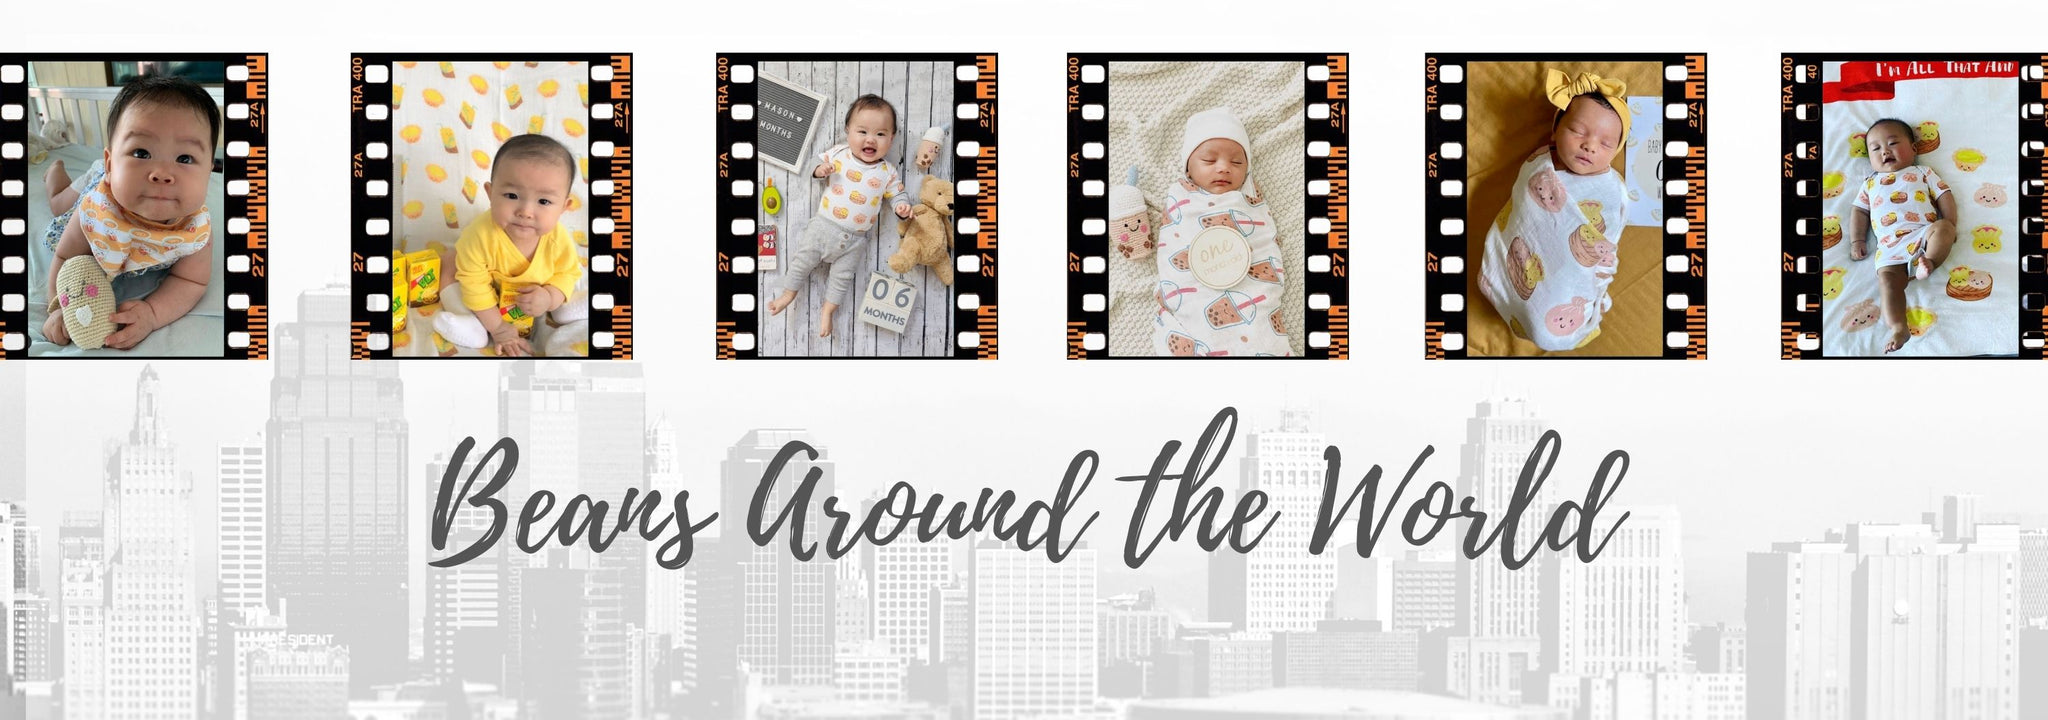 the wee bean beans around the world video campaign mommy reviews